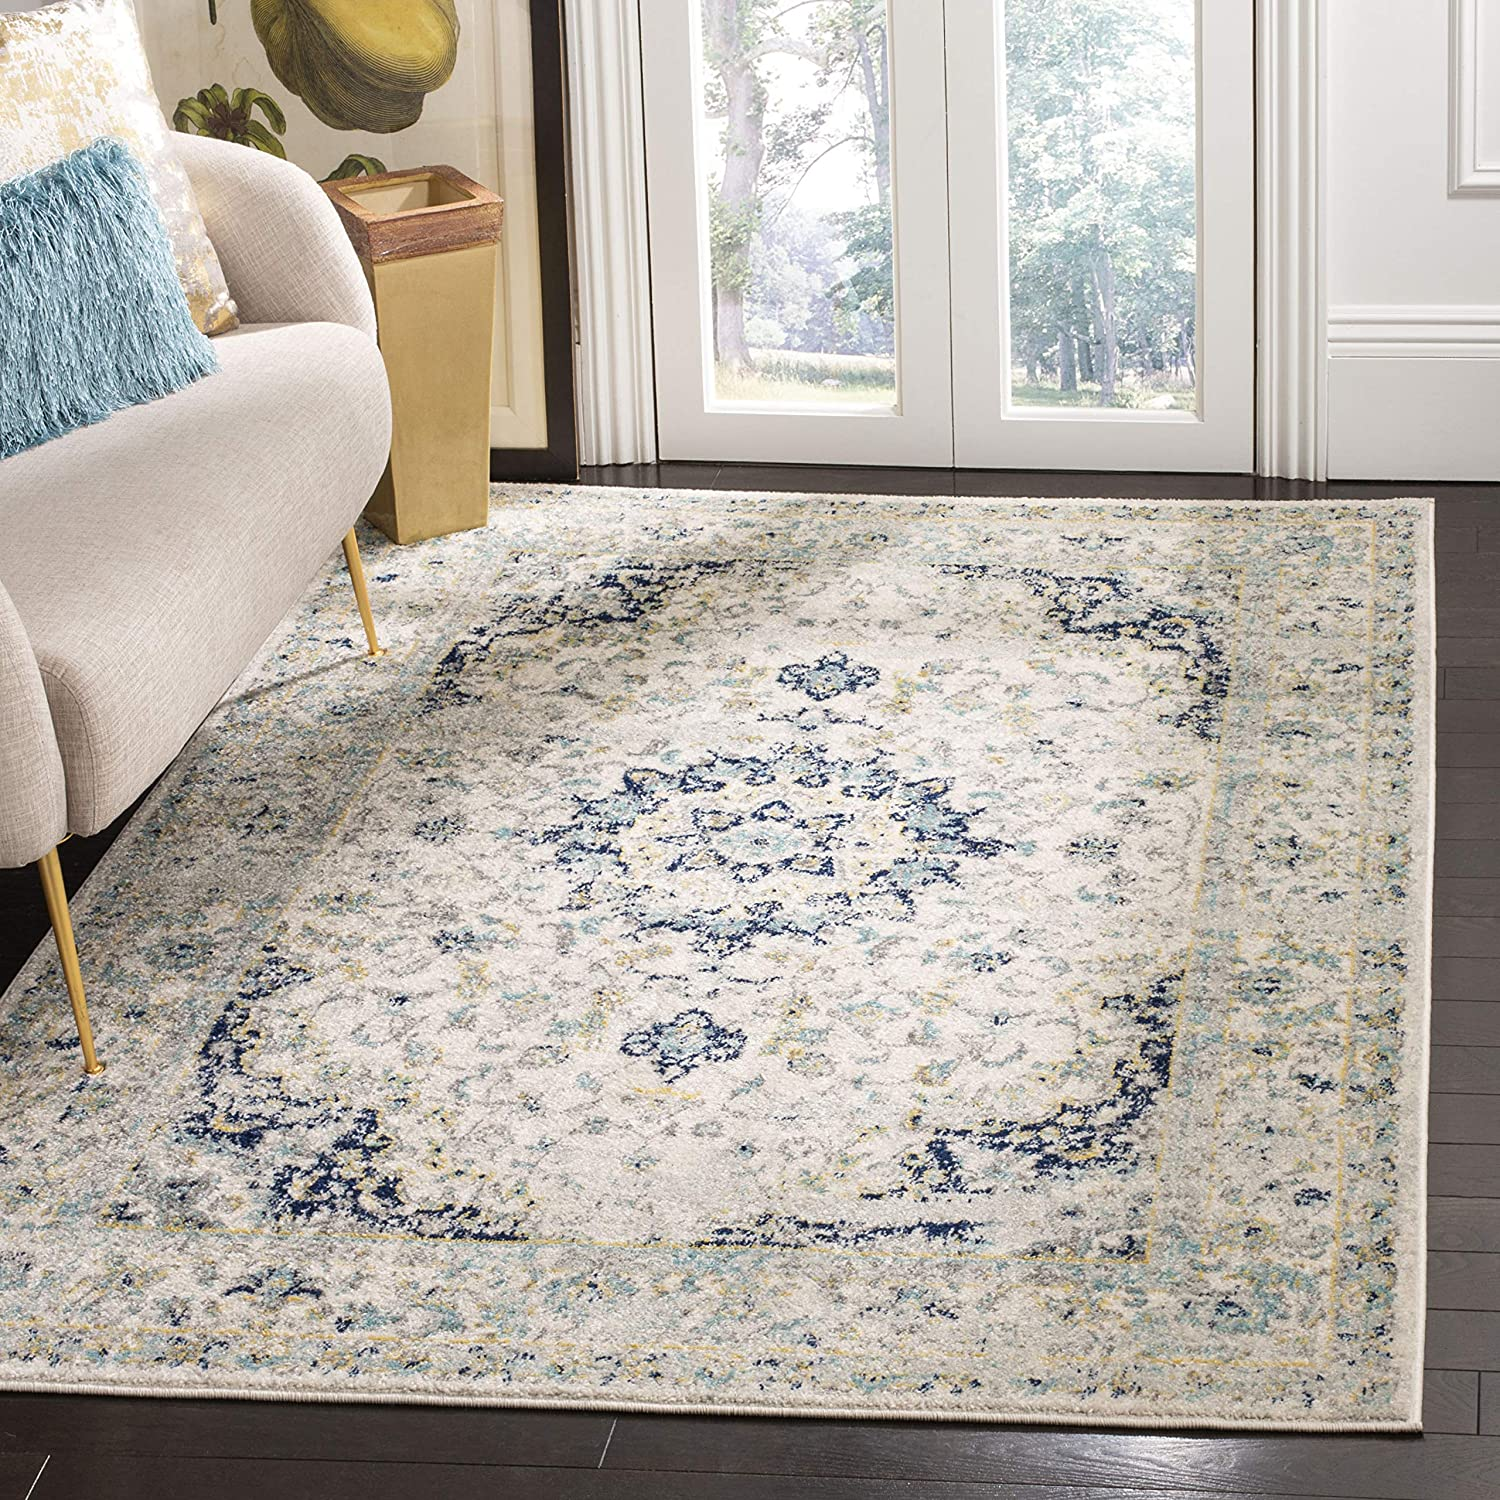 Safavieh Spring new work Madison Collection sale MAD155M Chic Non-Shed Medallion Boho